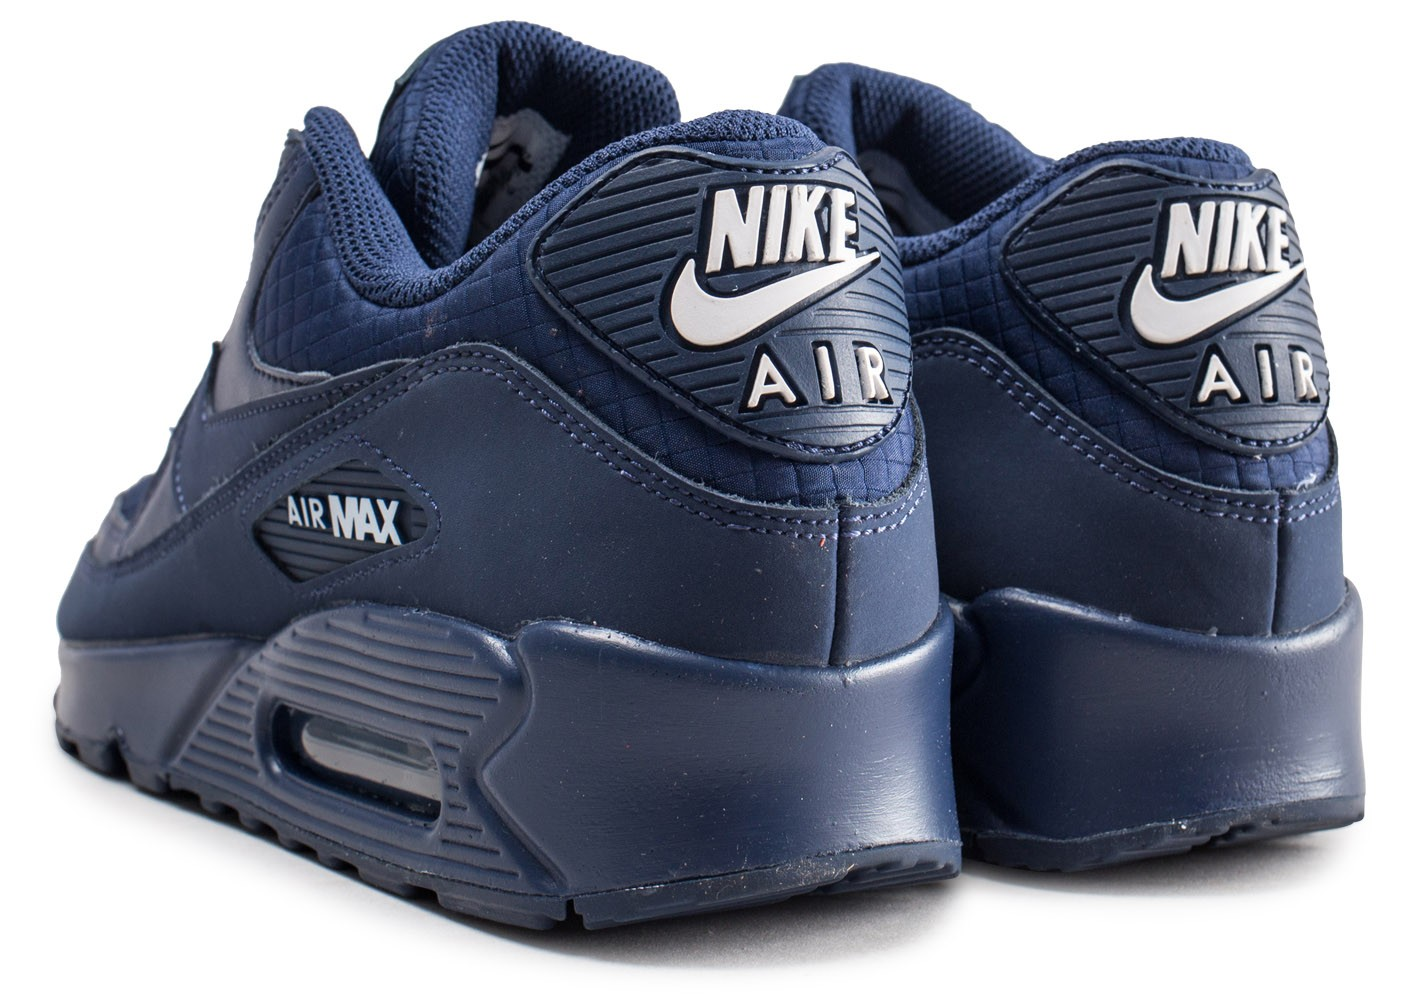 Air Max 90 Bleu Marine: